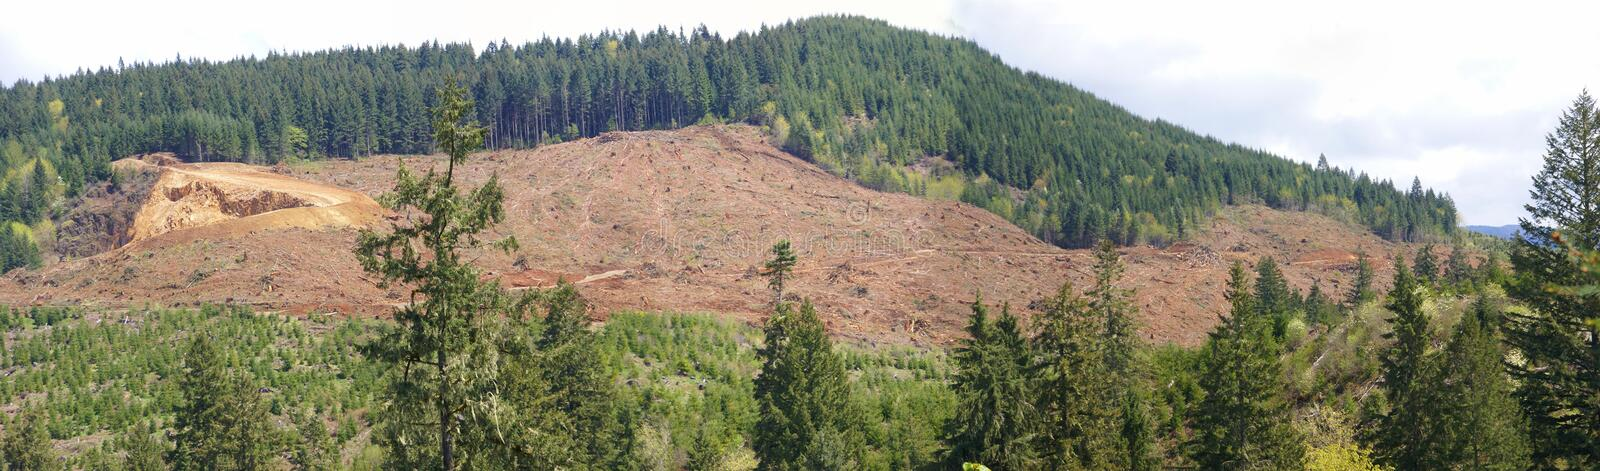 Clear cut logging slope royalty free stock photography